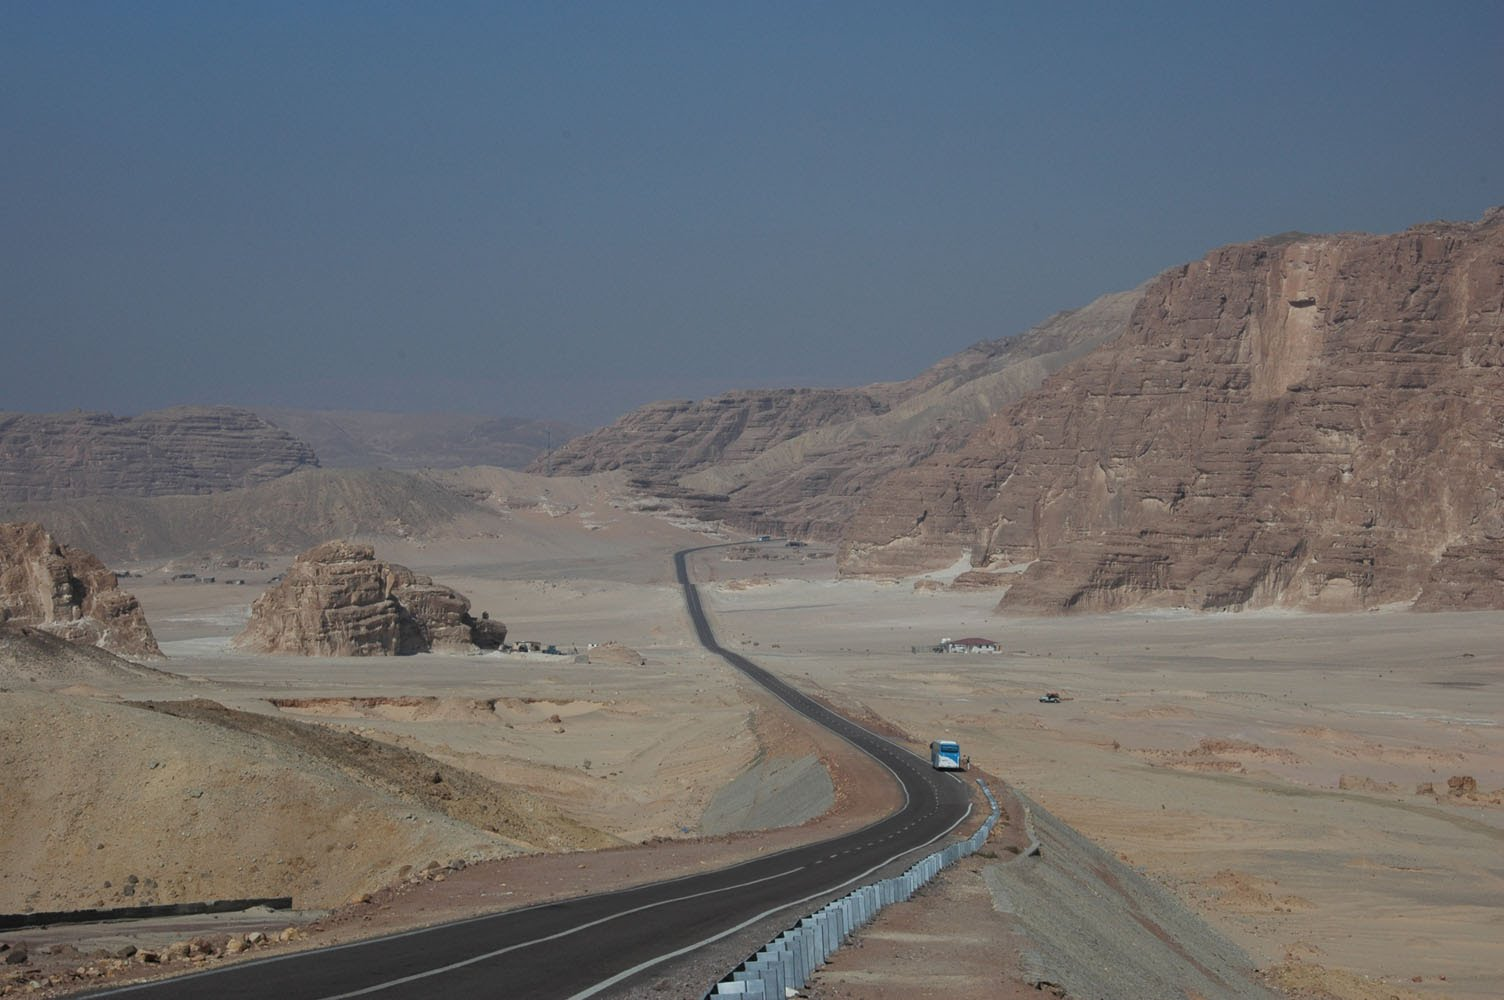 Driving through the Sinai Desert